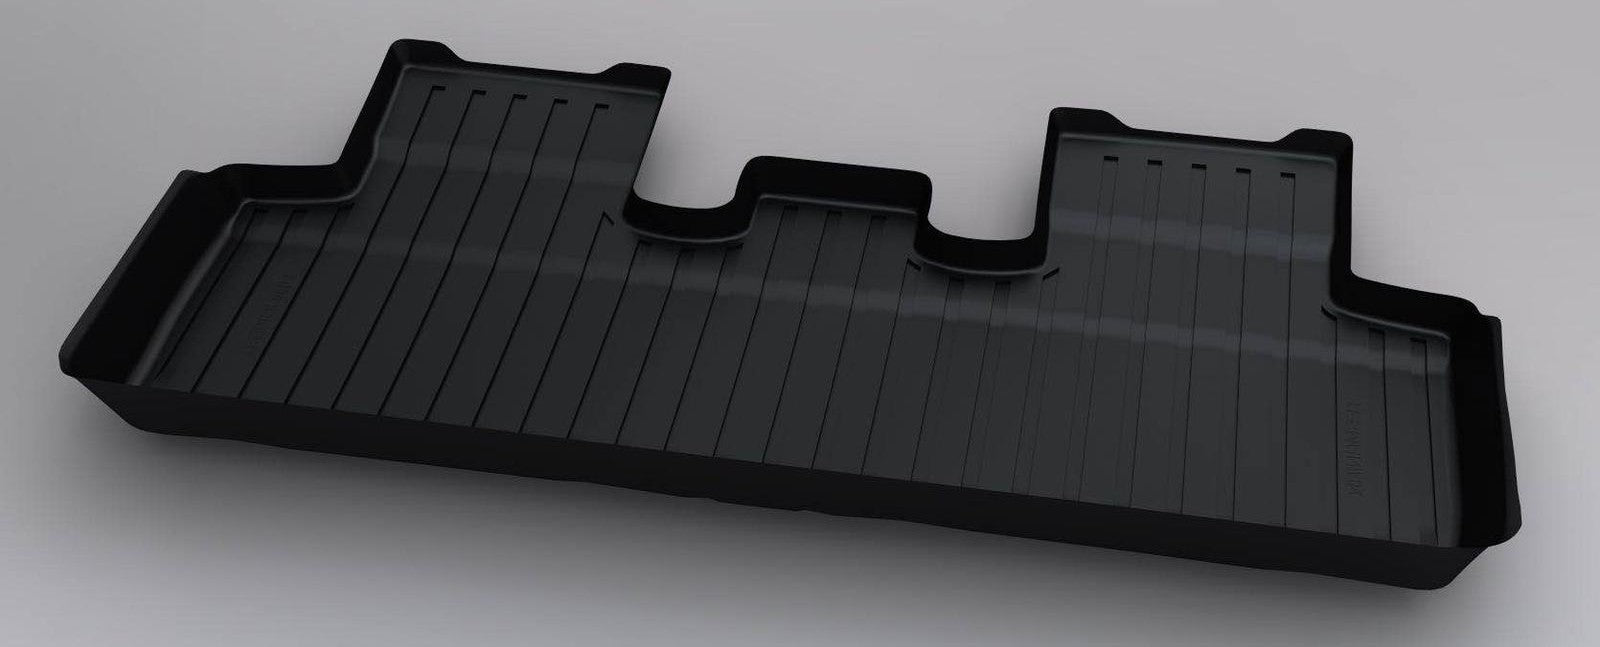 Tesla Model Y Floor Mats (Rear Seat)